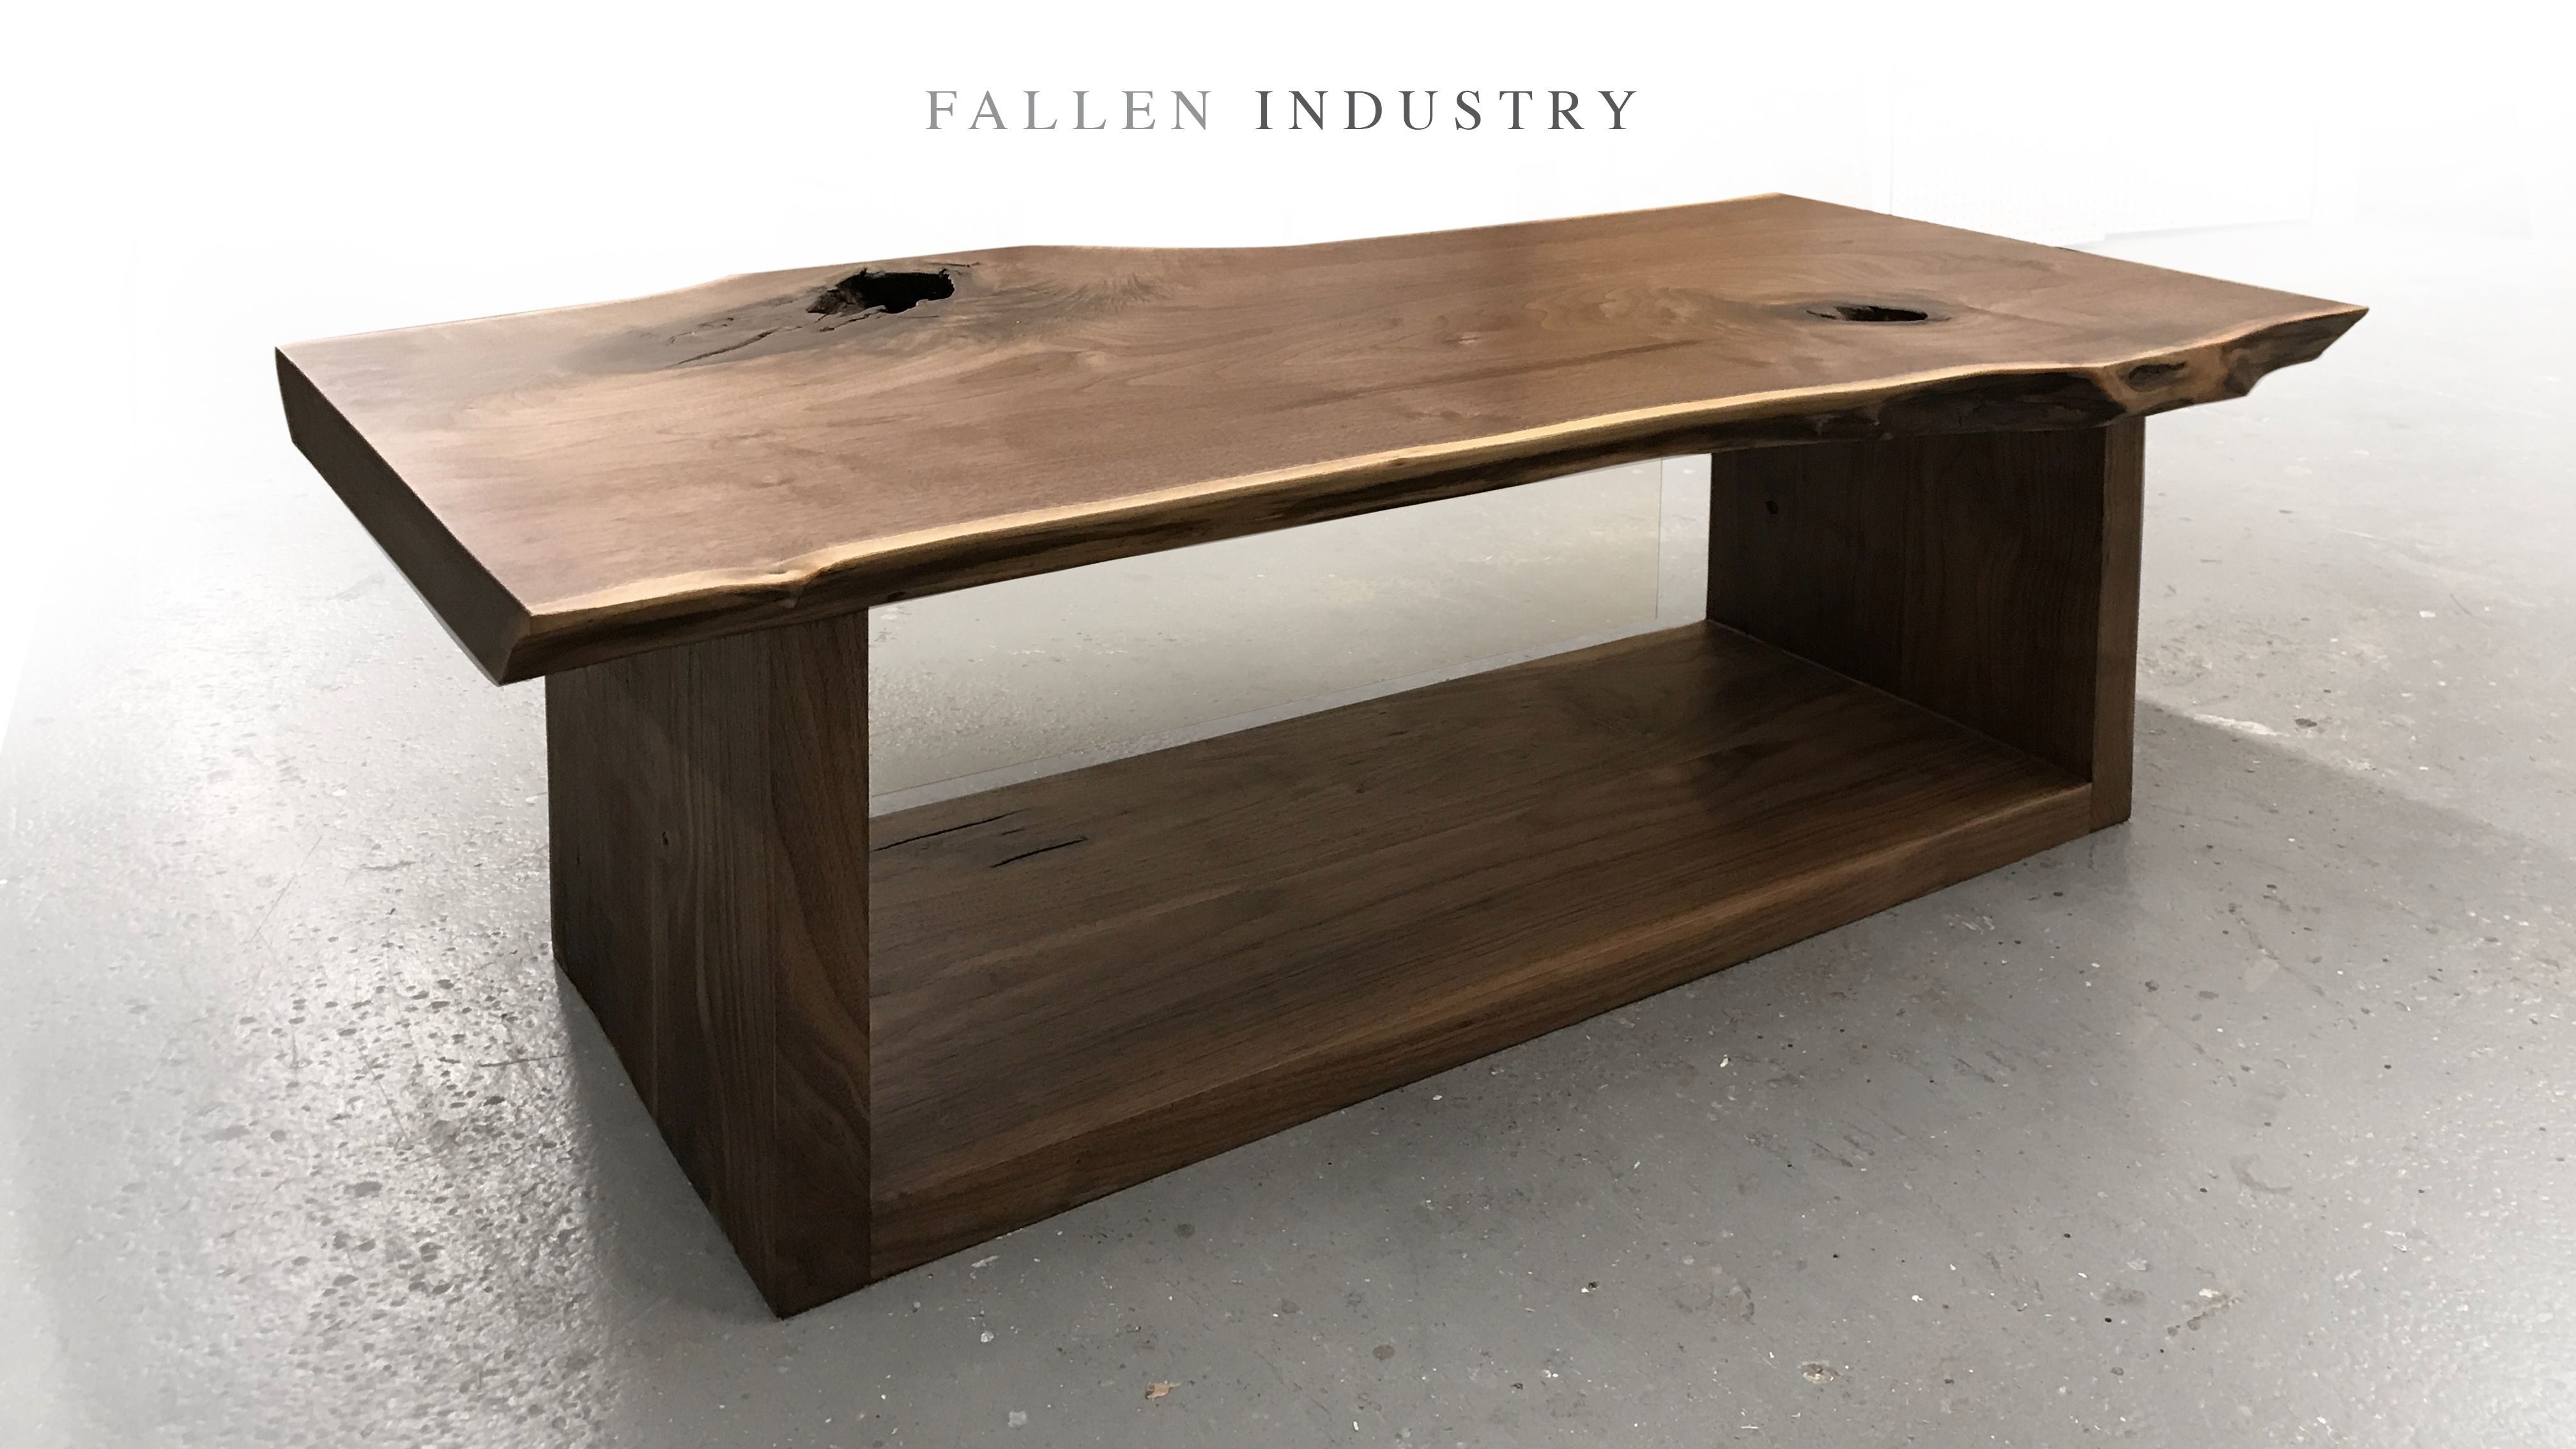 Live Edge Walnut Storage Coffee Table Cool Custom Furniture And Architectural Elemen Reclaimed Wood Furniture Coffee Table With Storage Live Edge Coffee Table [ 2268 x 4032 Pixel ]